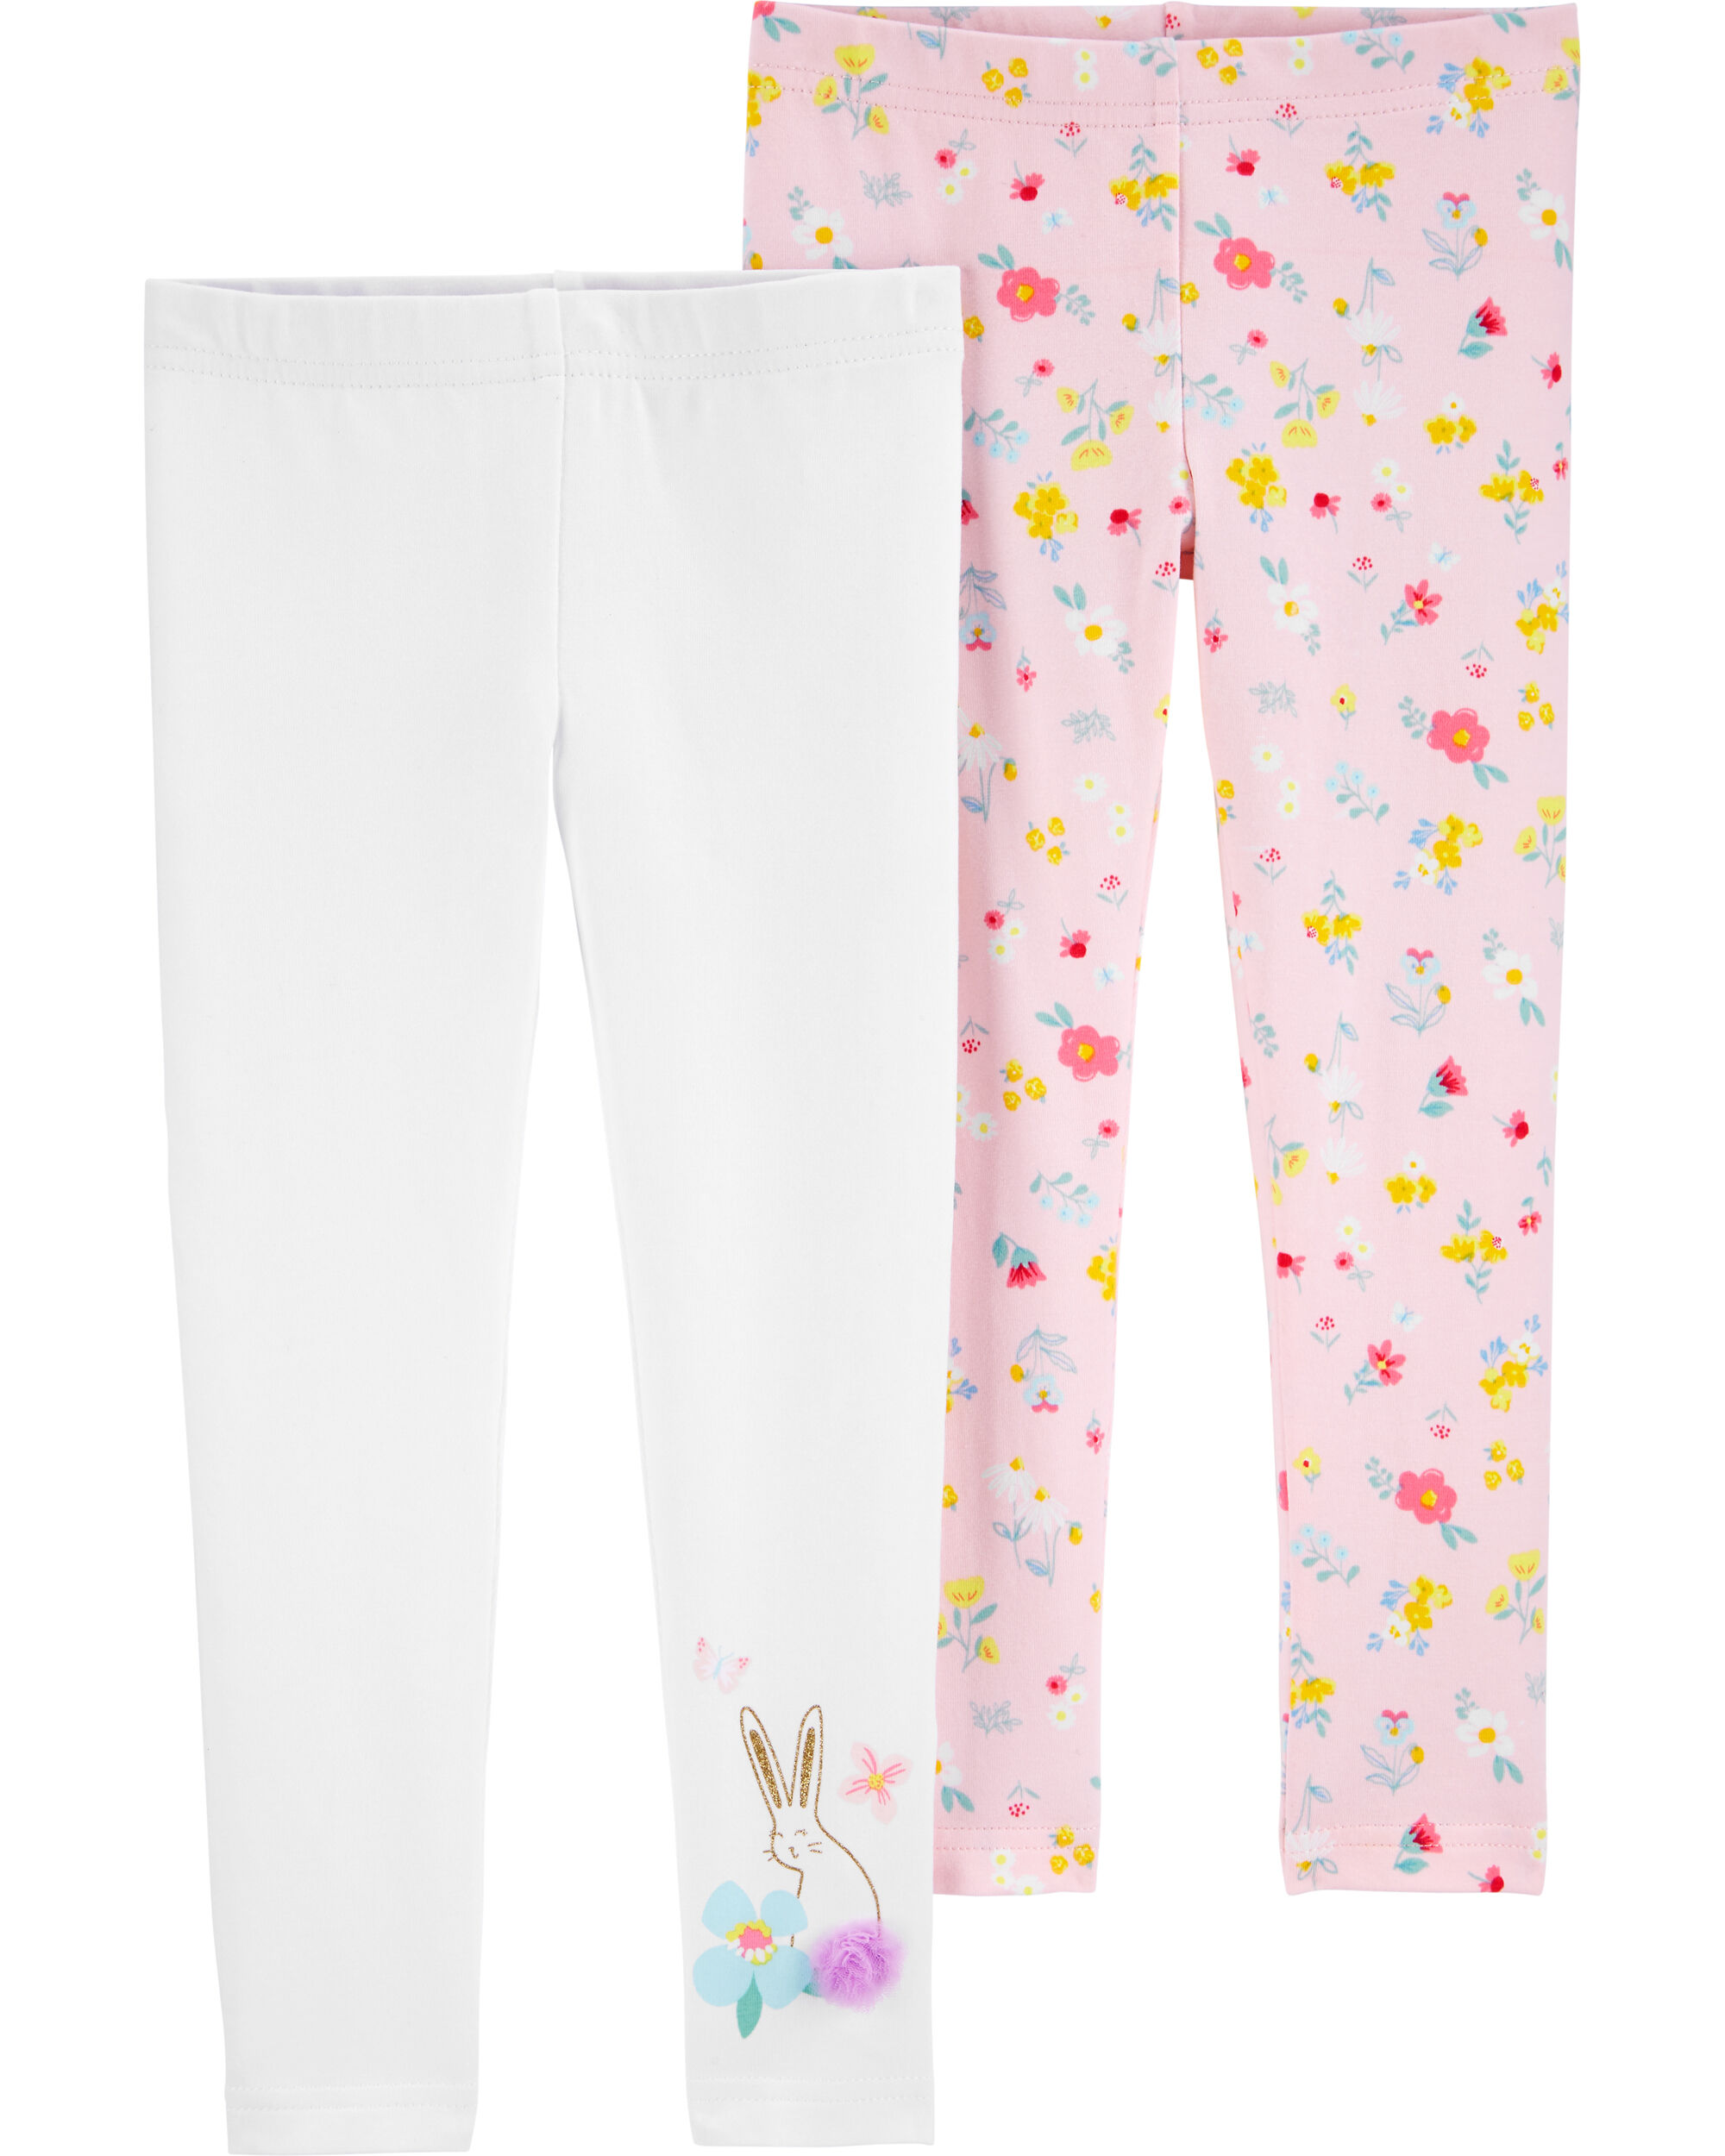 2-Pack Floral Leggings